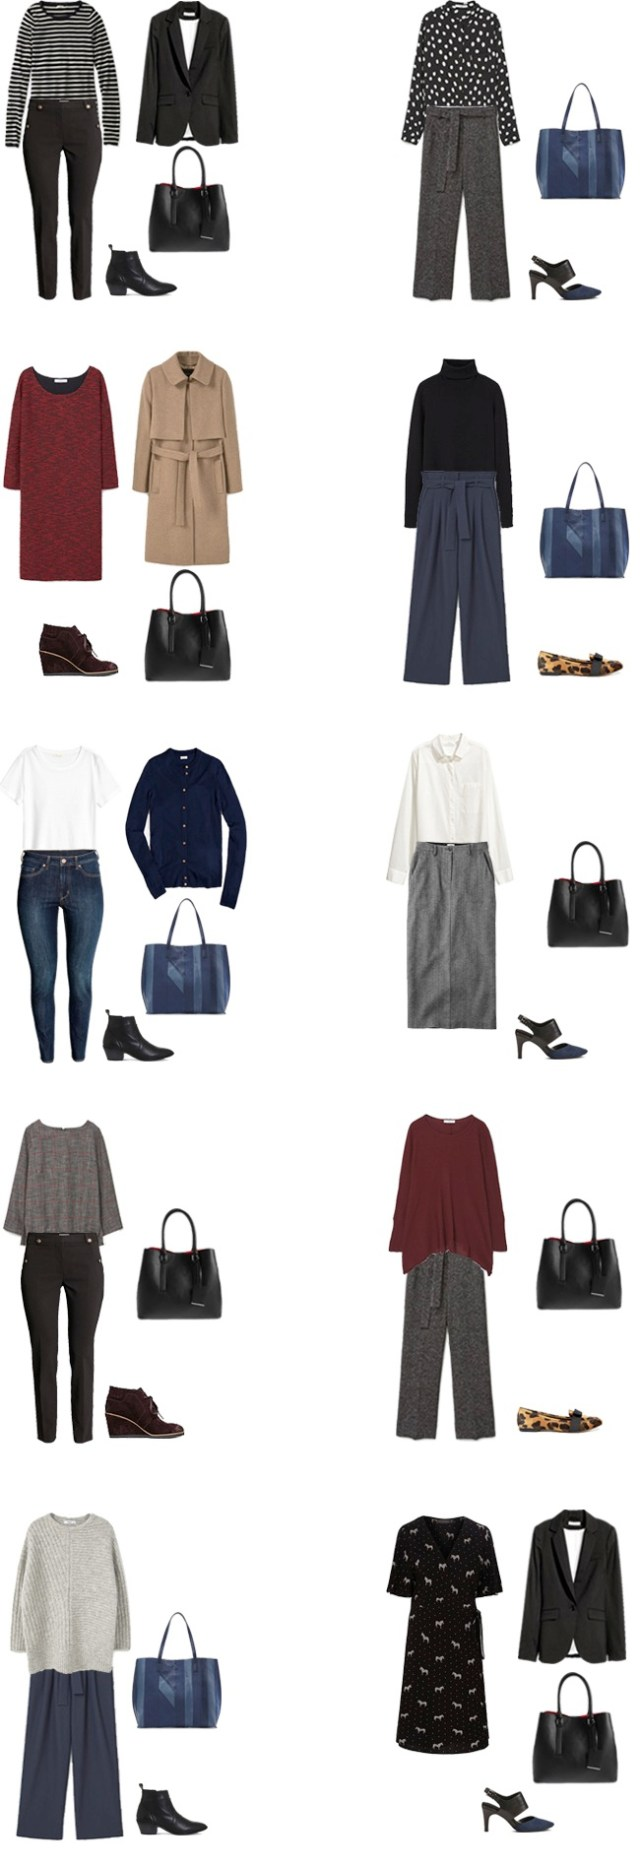 Fall/winter work capsule wardrobe business casual outfit options 1-10 #capsule #capsulewardrobe #workcapsule #workwear